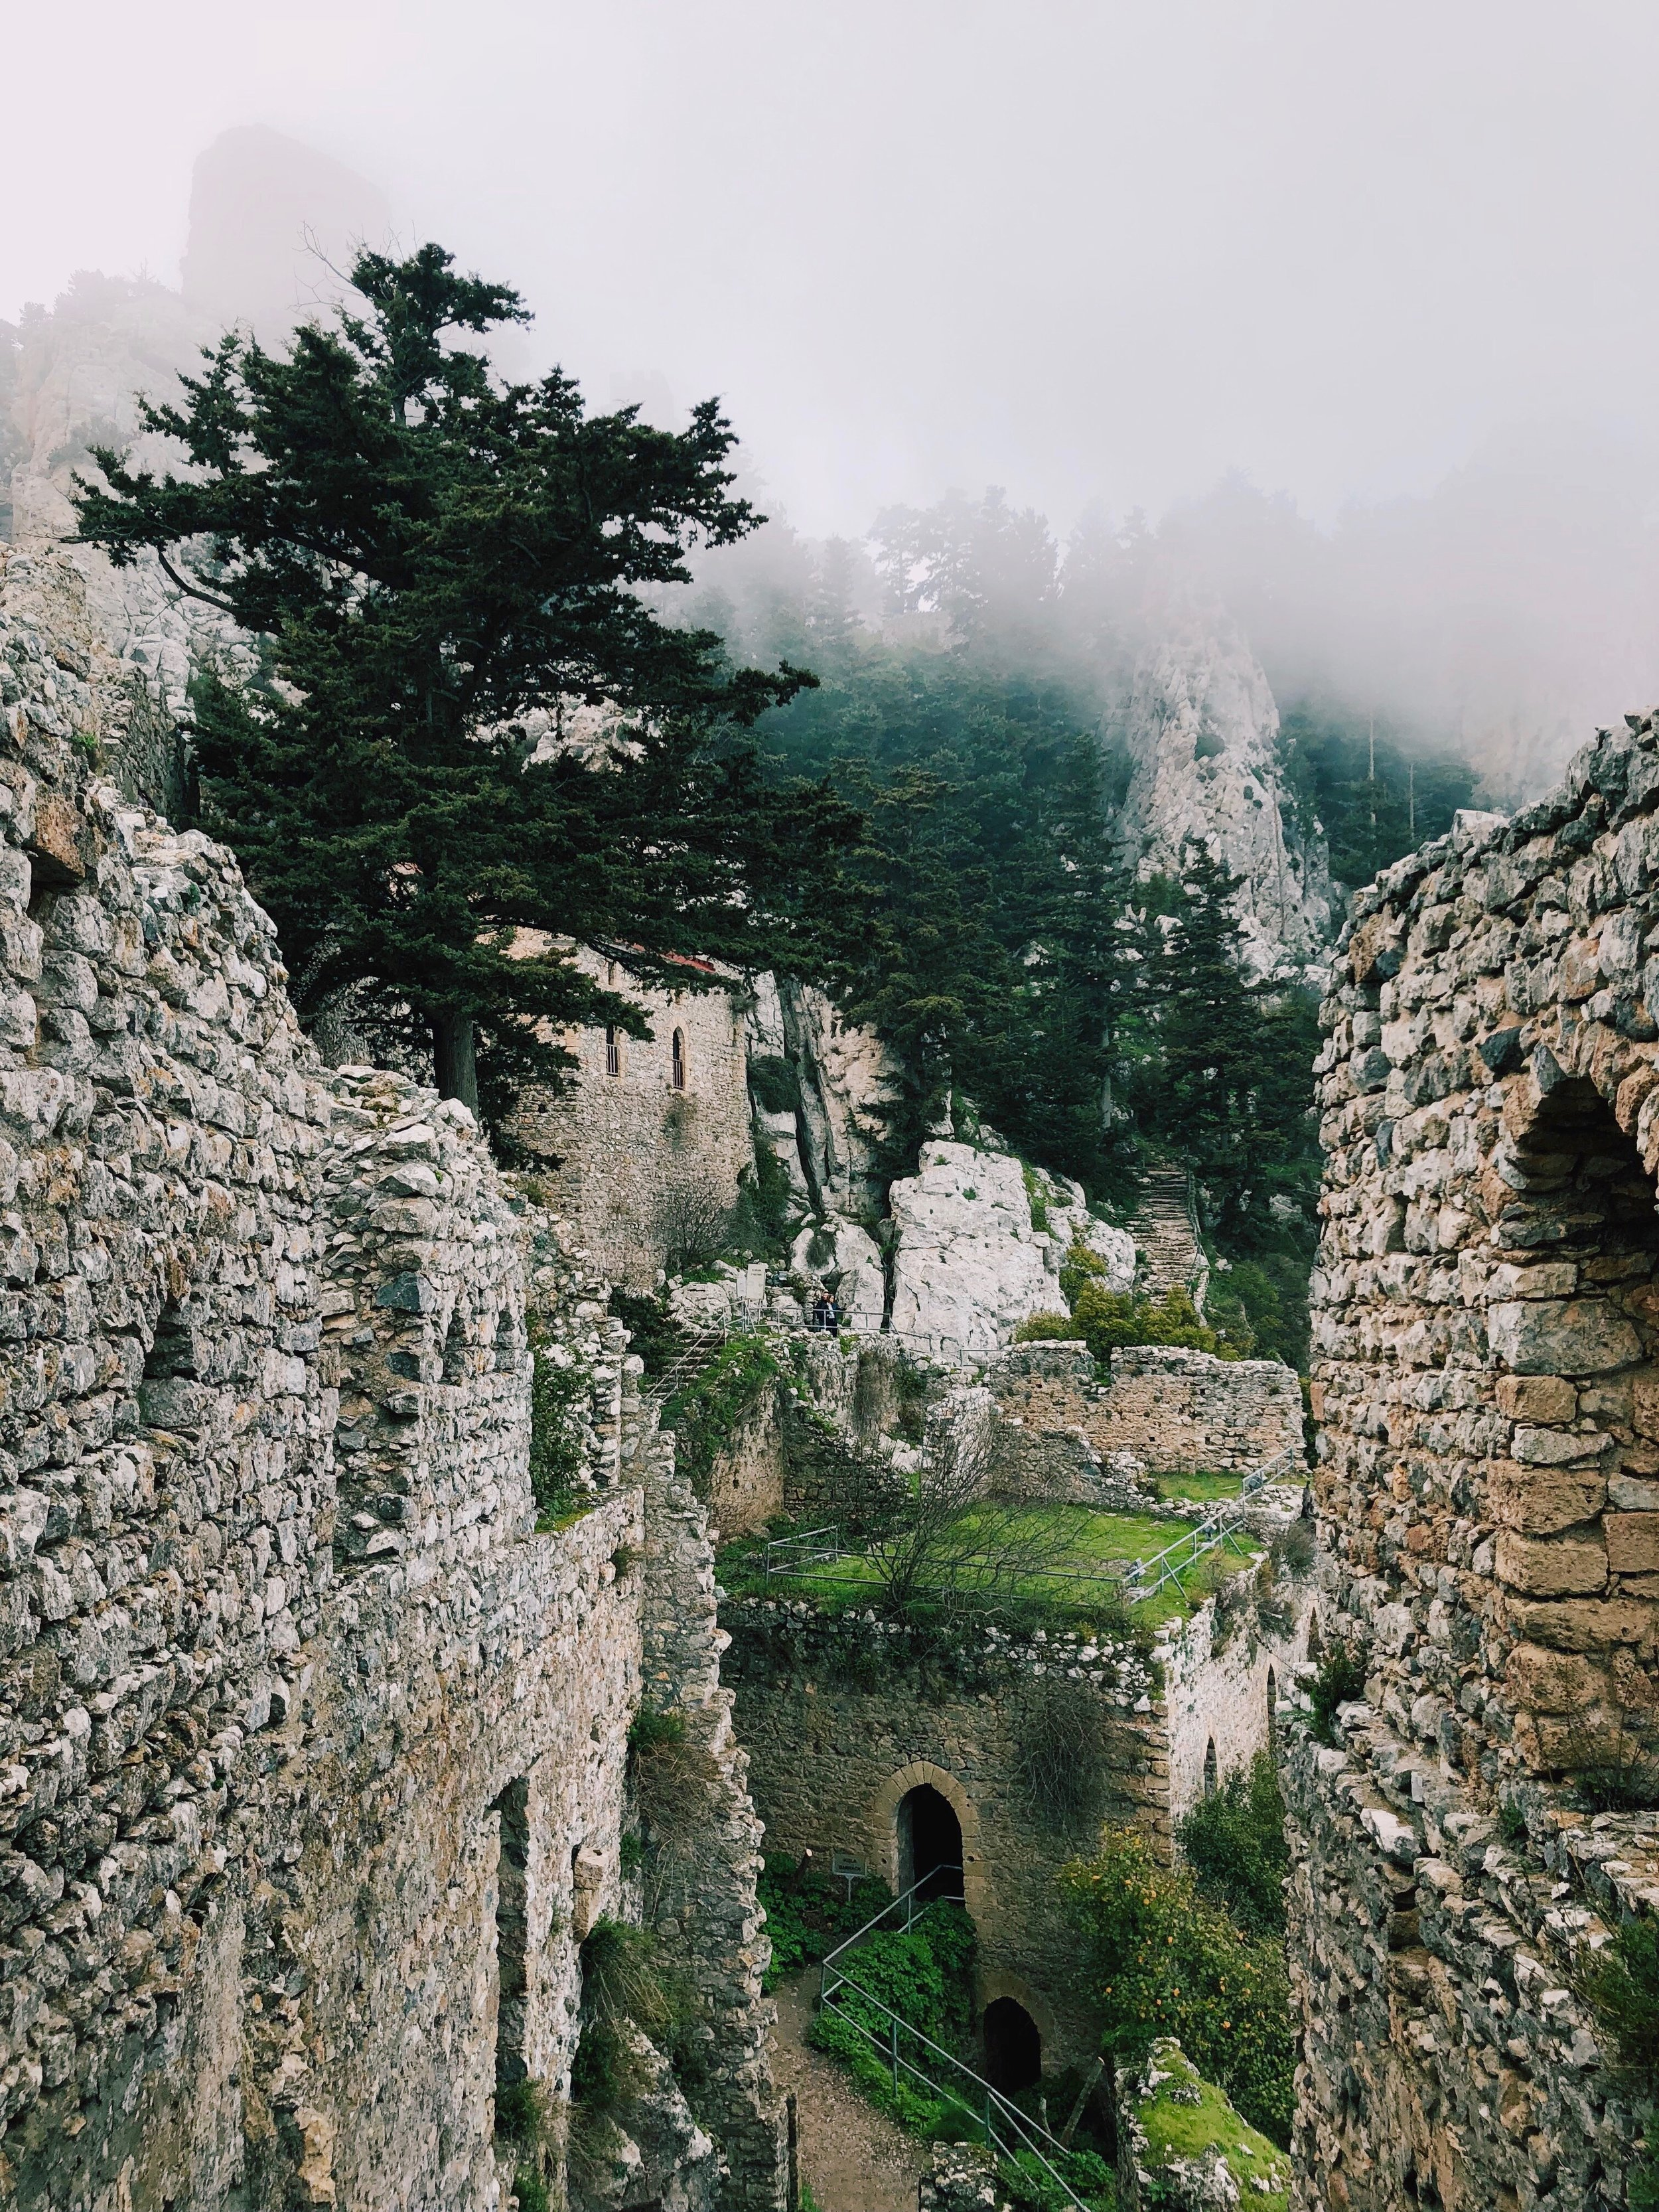 Exploring the immense ruins. It's one of the funniest castles to explore that I have visited!